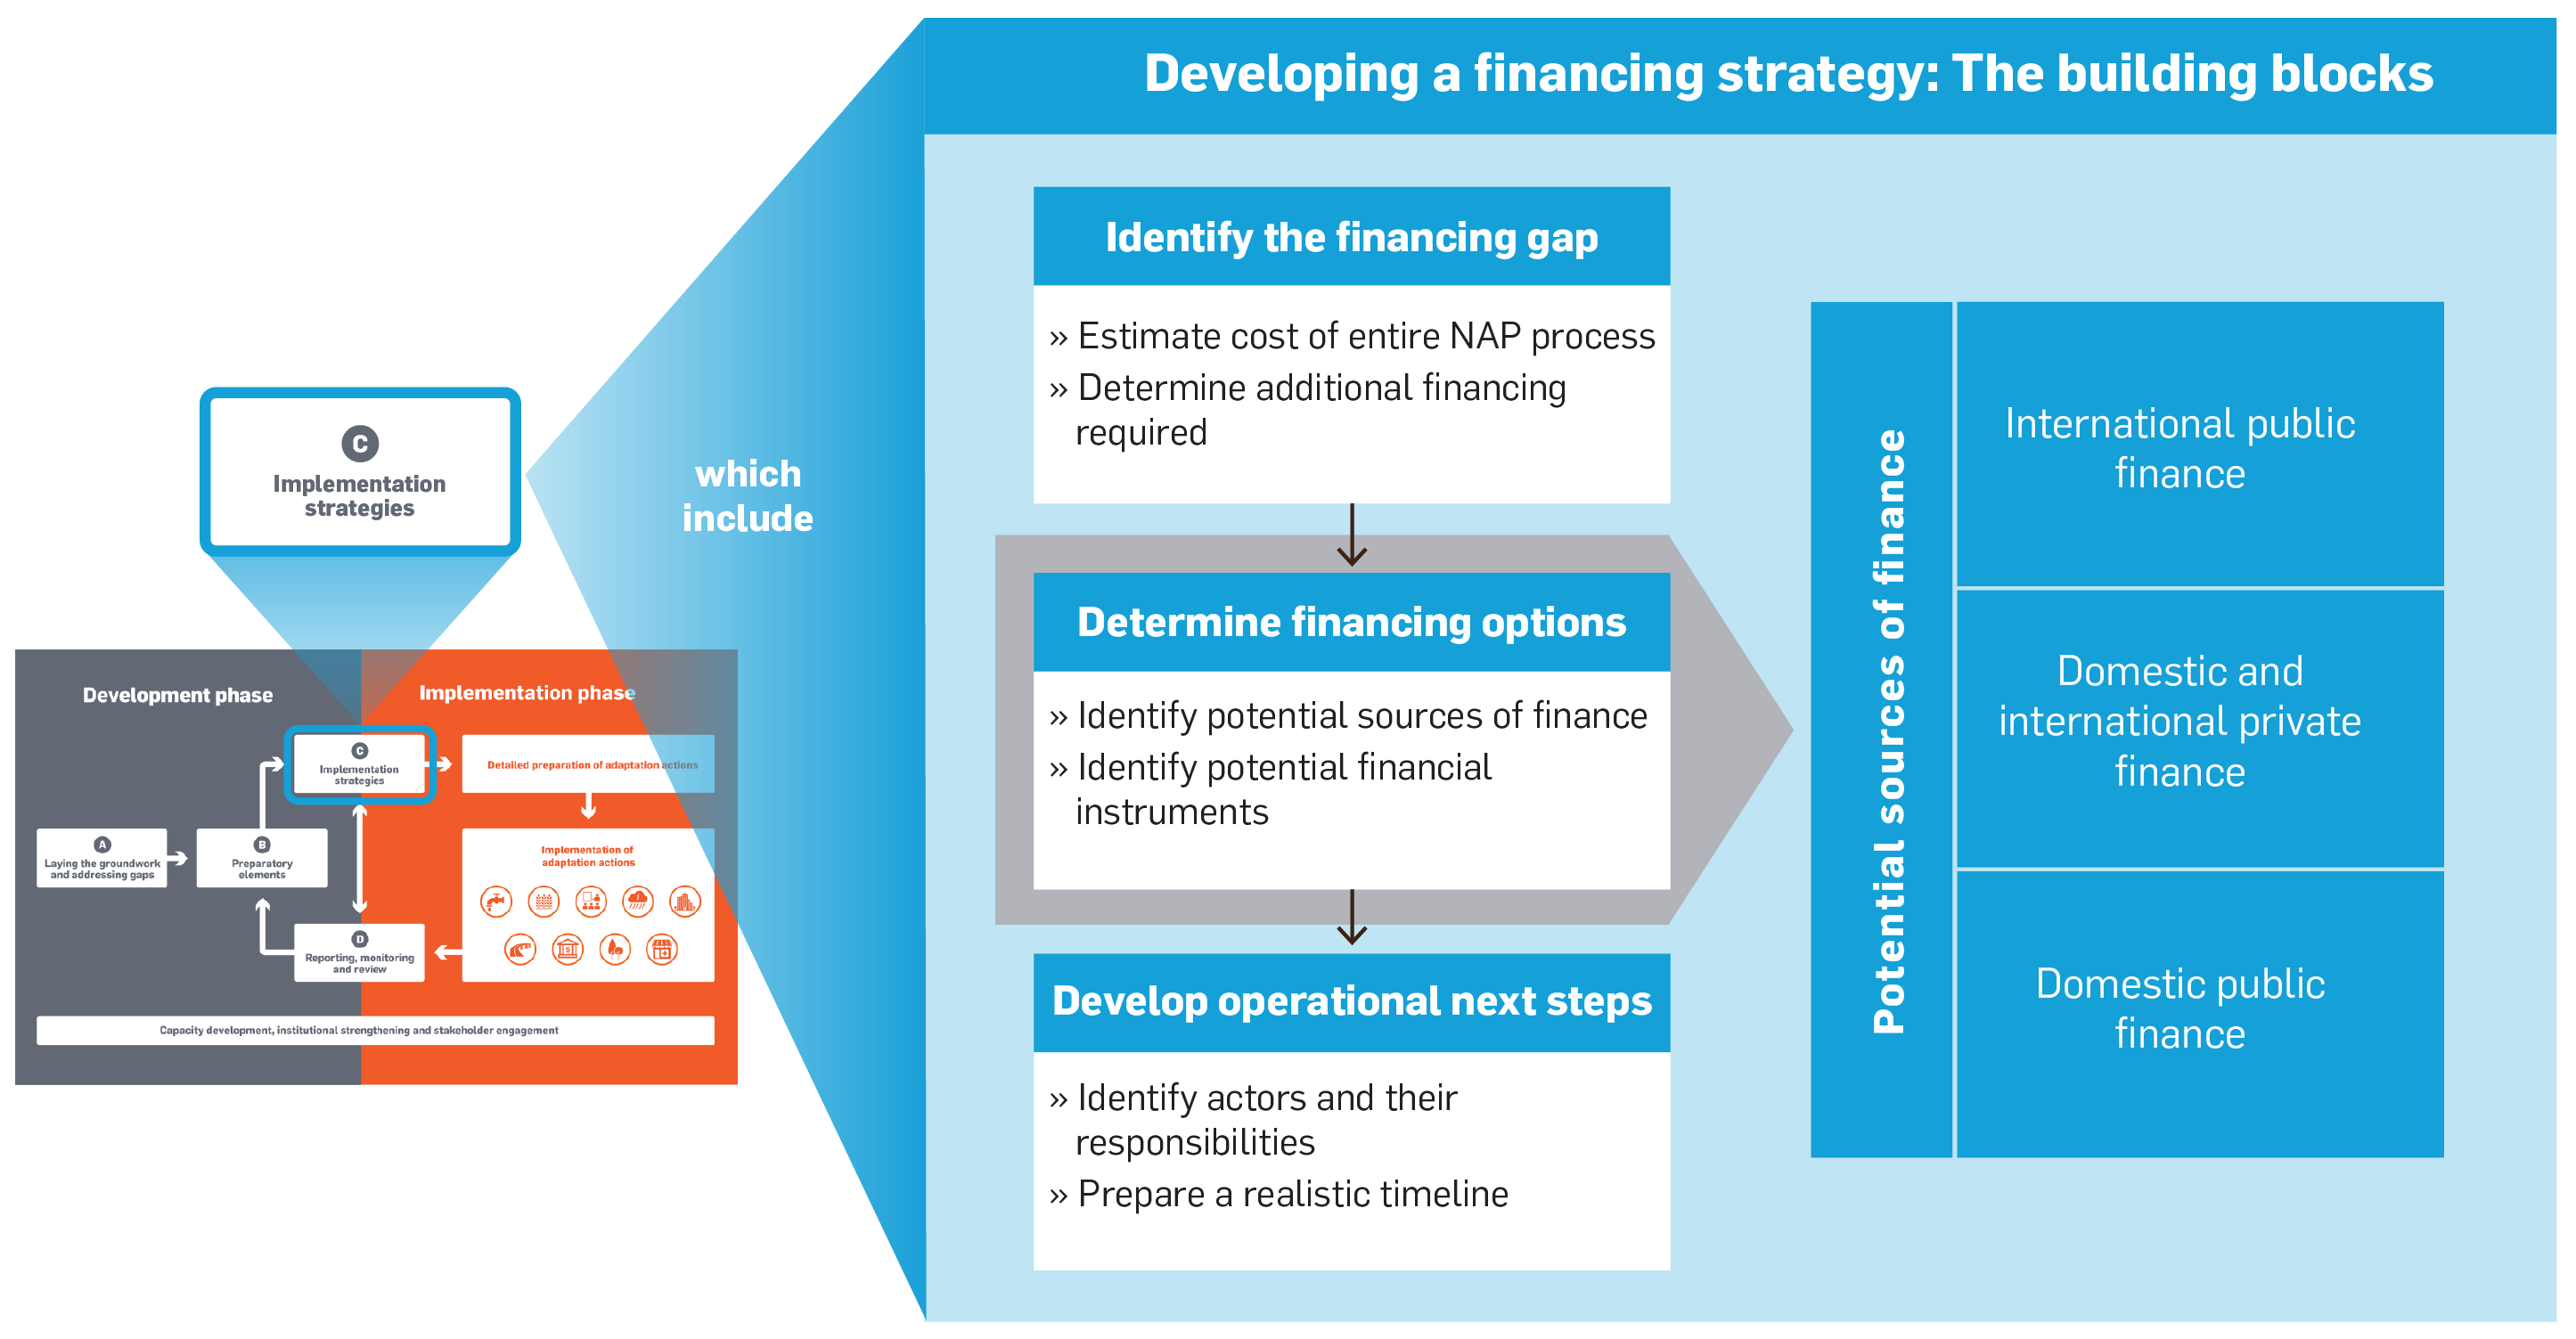 FINANCING STRATEGY EBOOK DOWNLOAD